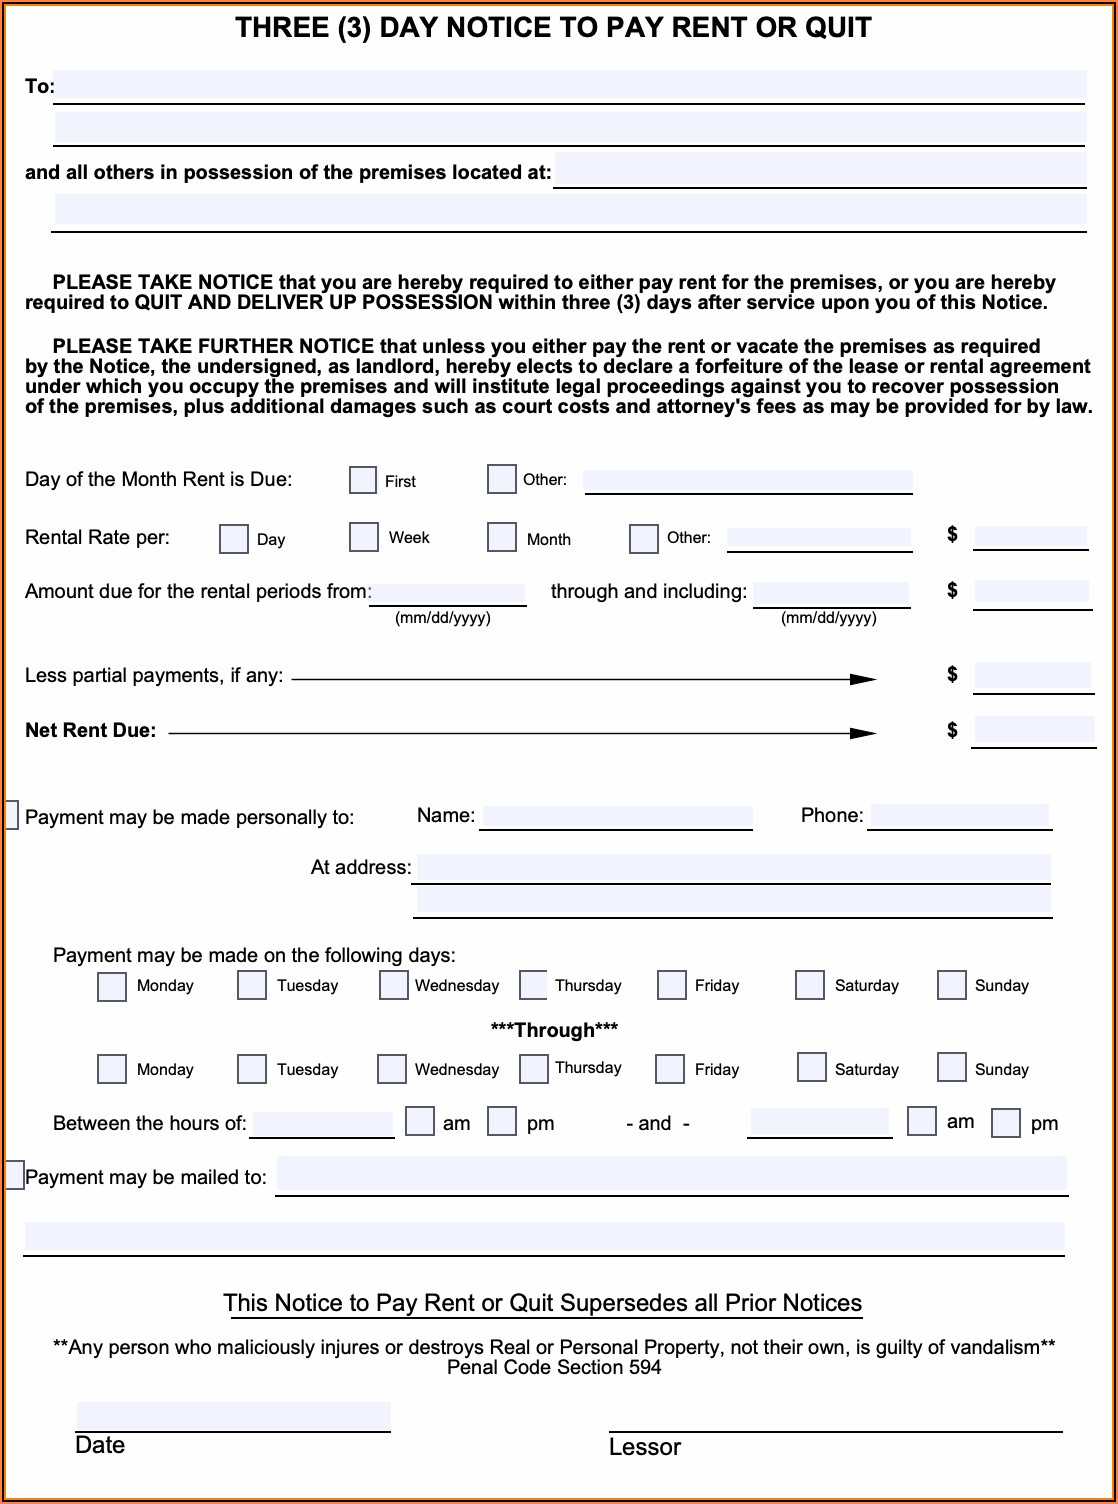 California 3 Day Notice To Pay Or Quit Commercial Lease Form